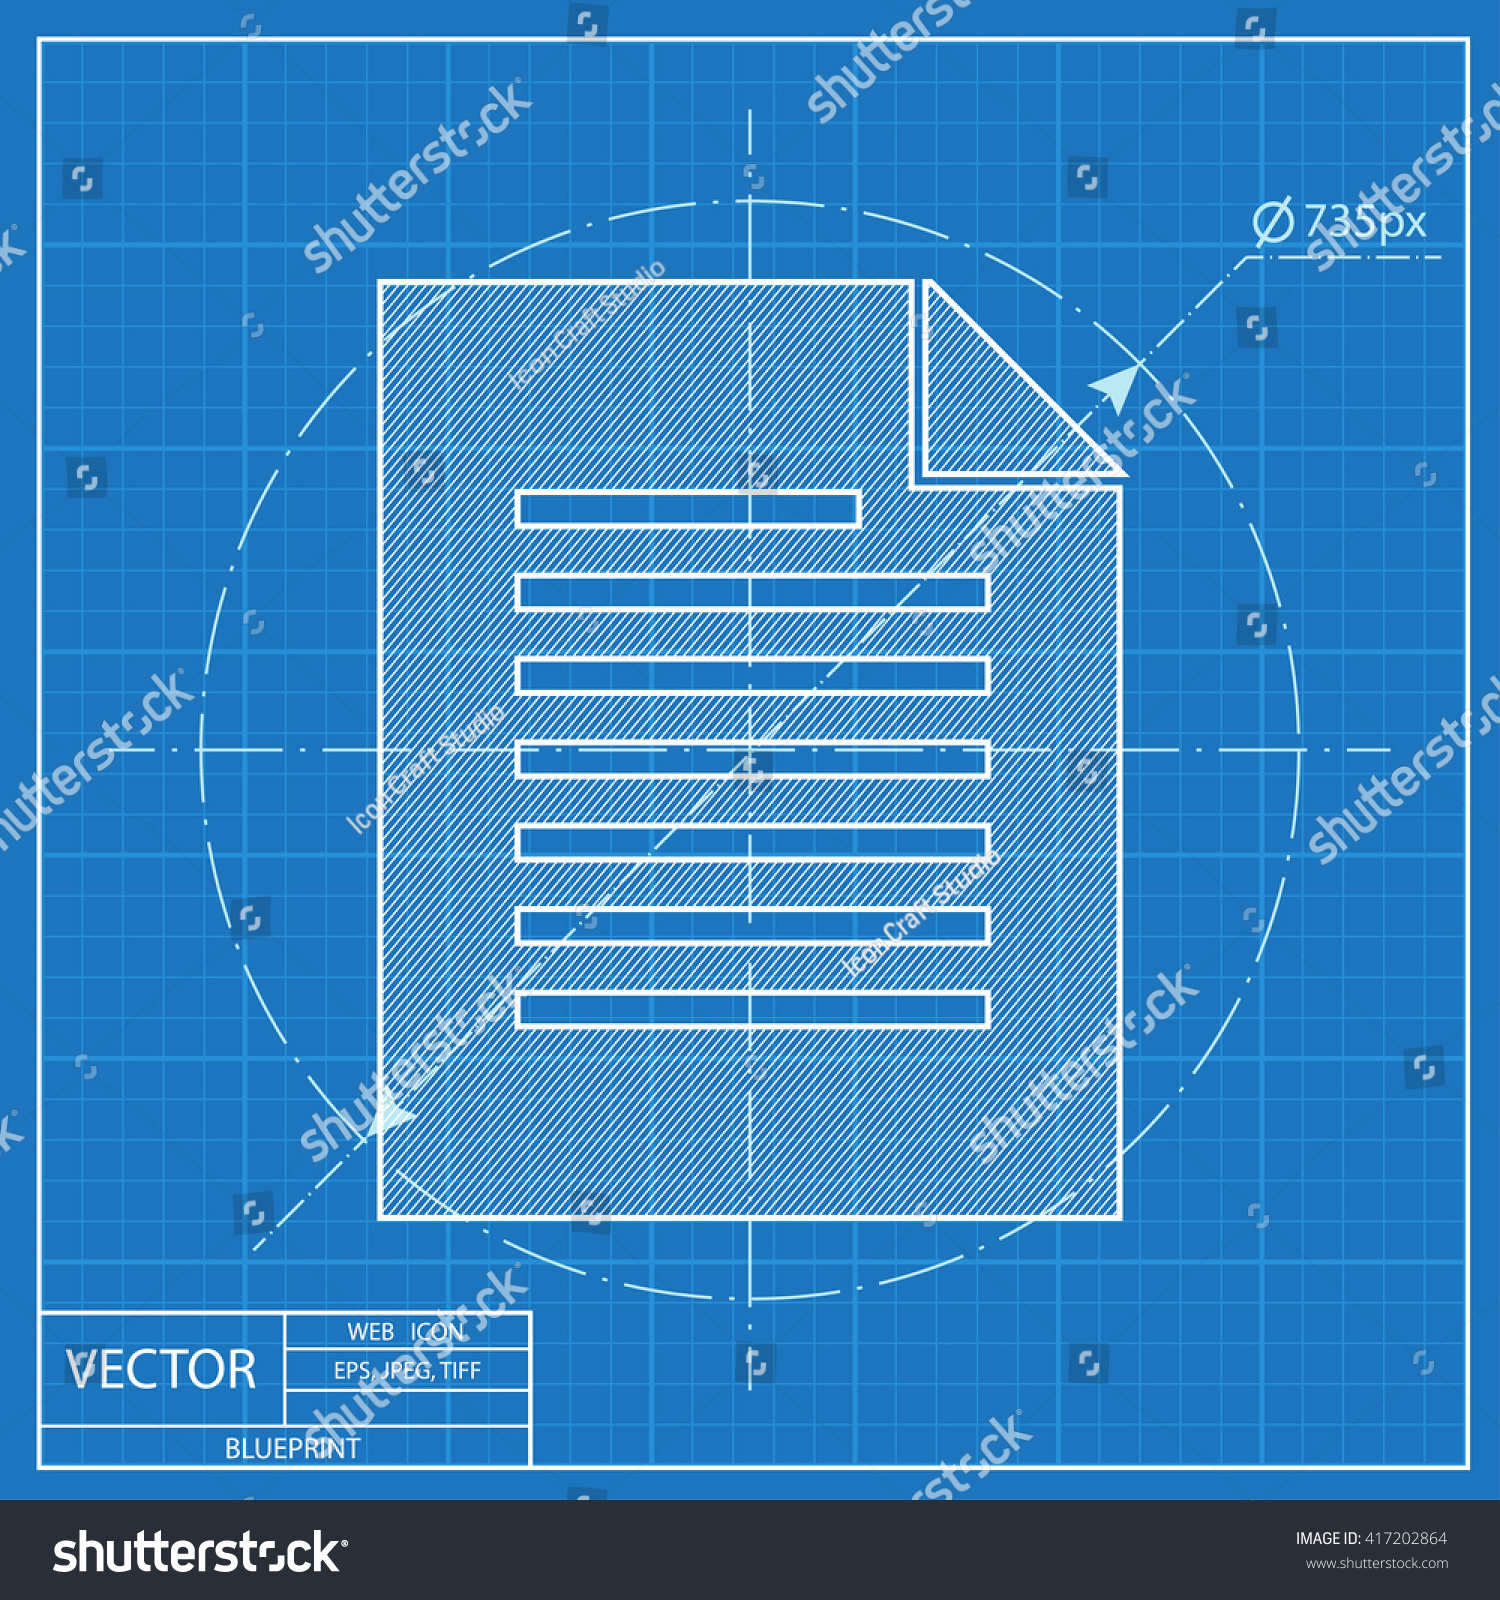 Blueprint icon document stock vector 417202864 shutterstock malvernweather Choice Image